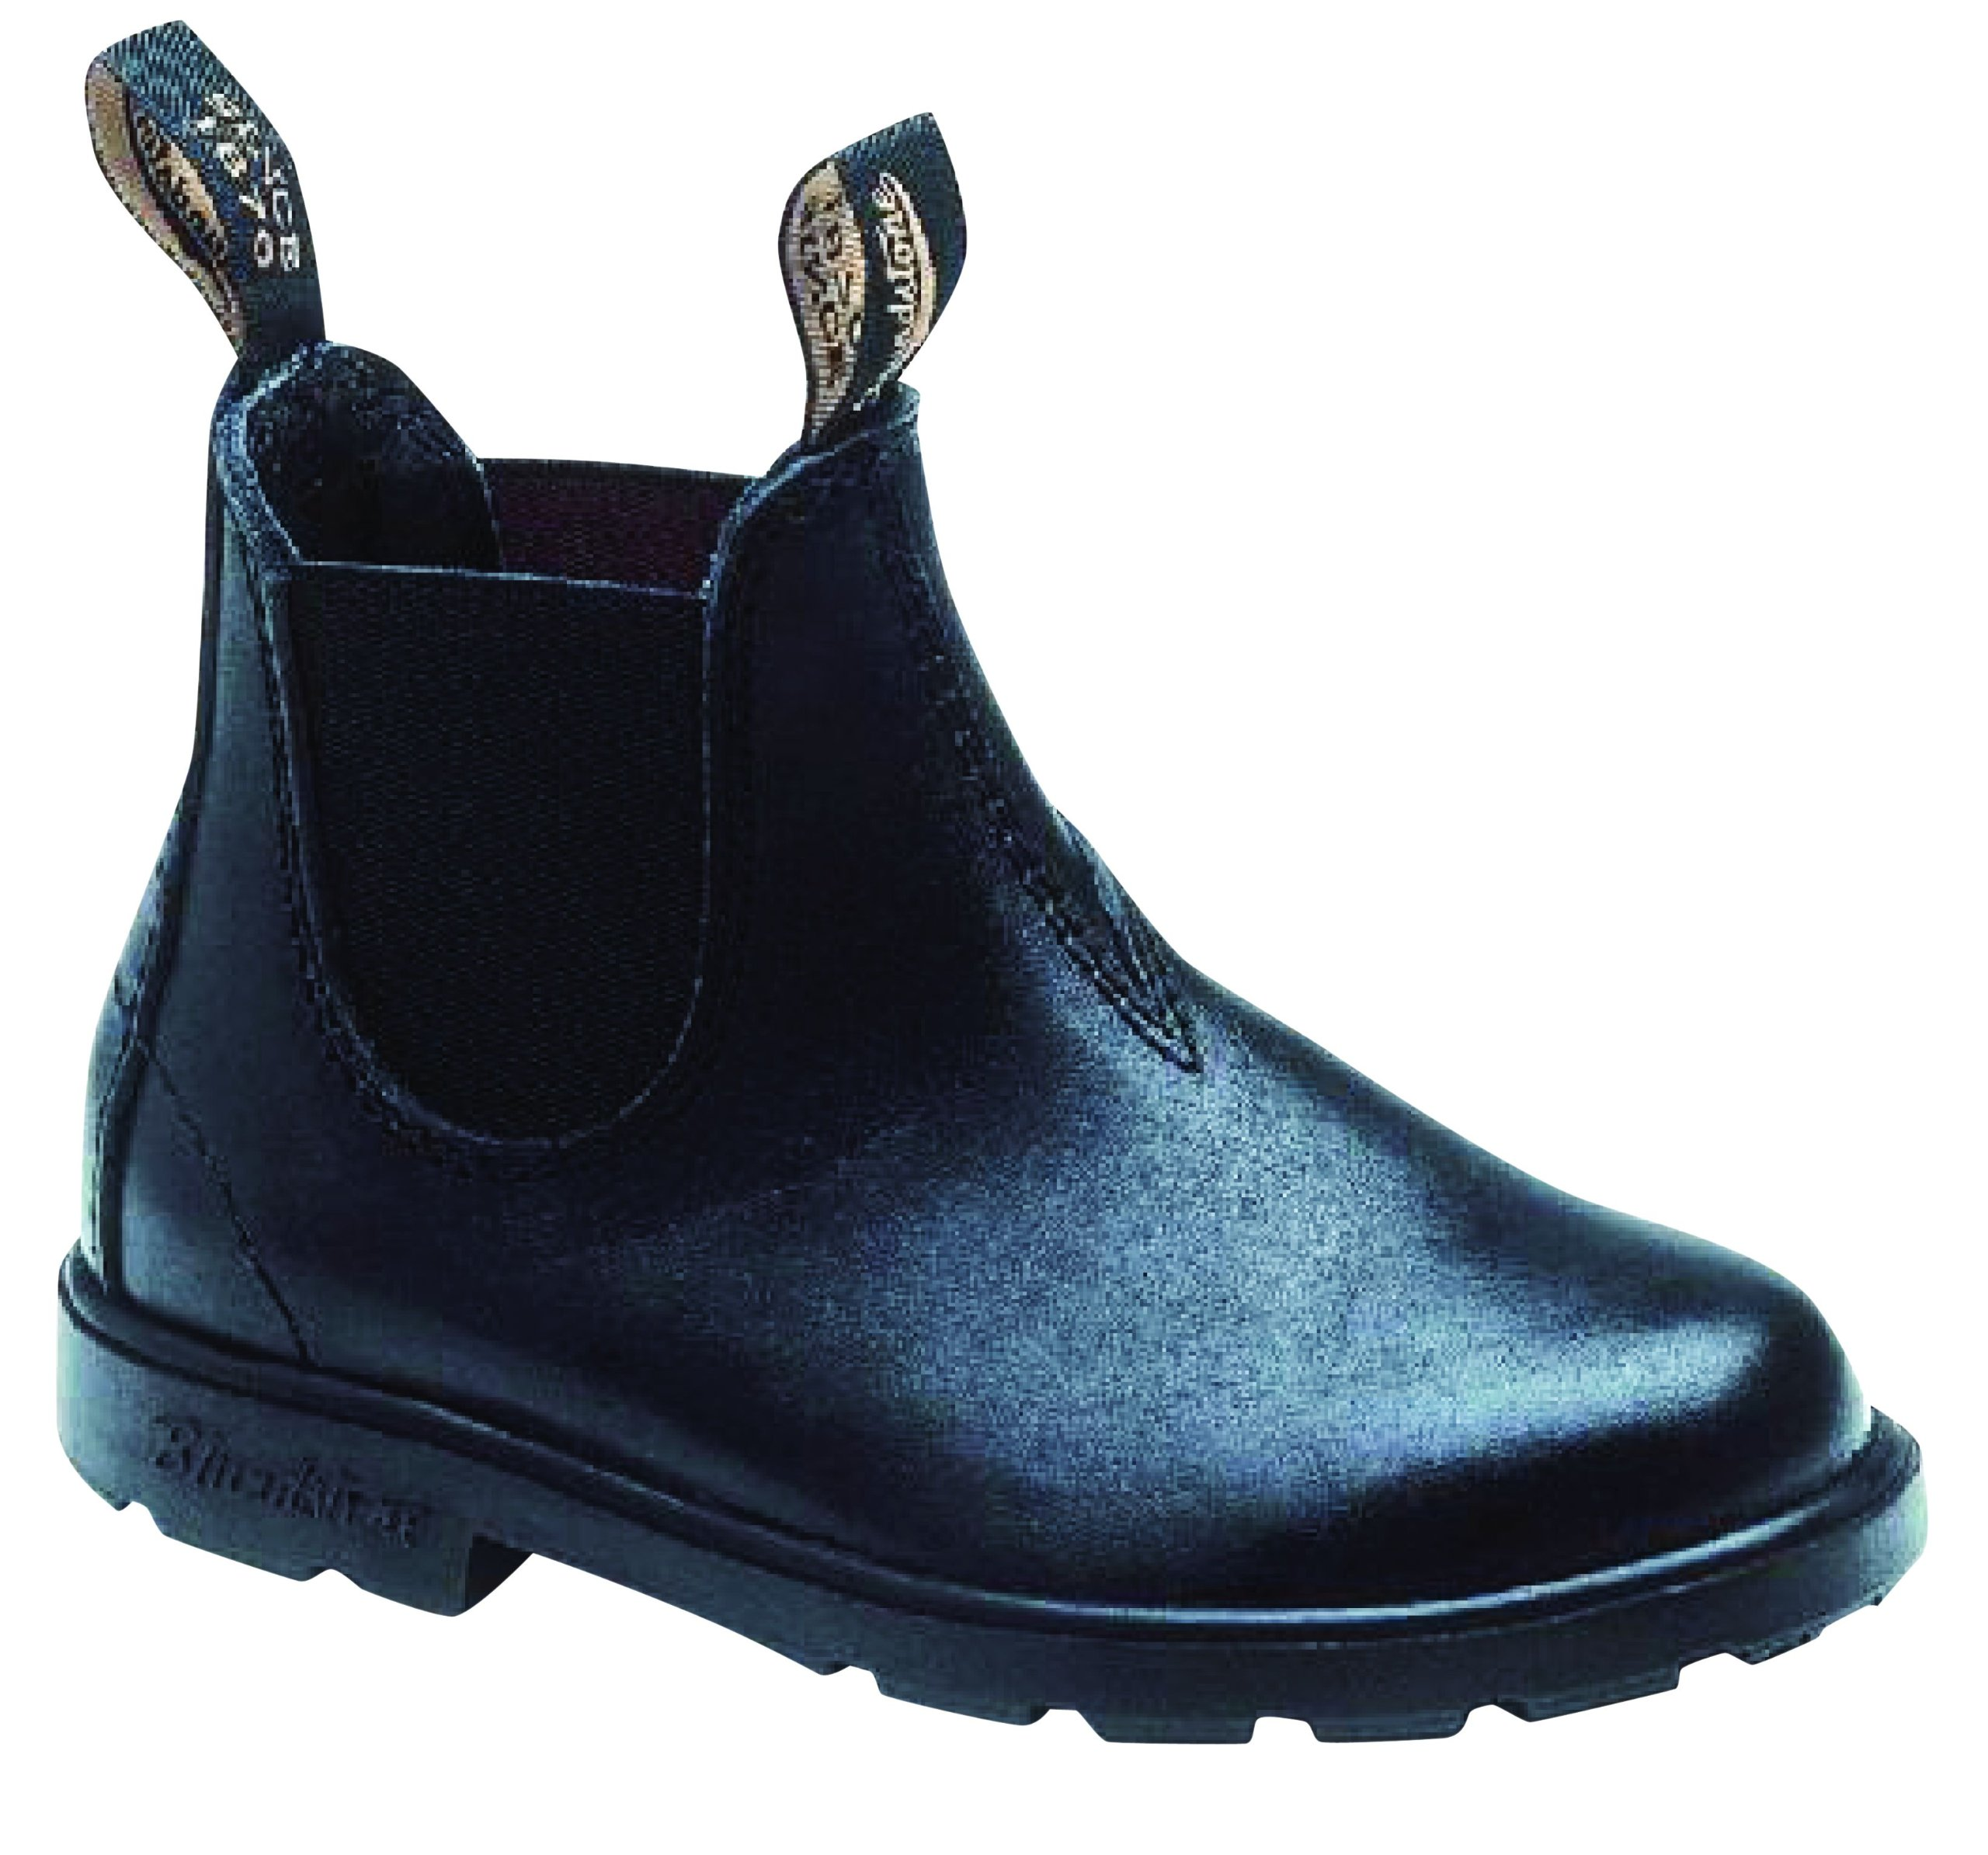 Blundstone Infants/Toddlers Blunnies,Black,AU 8 M